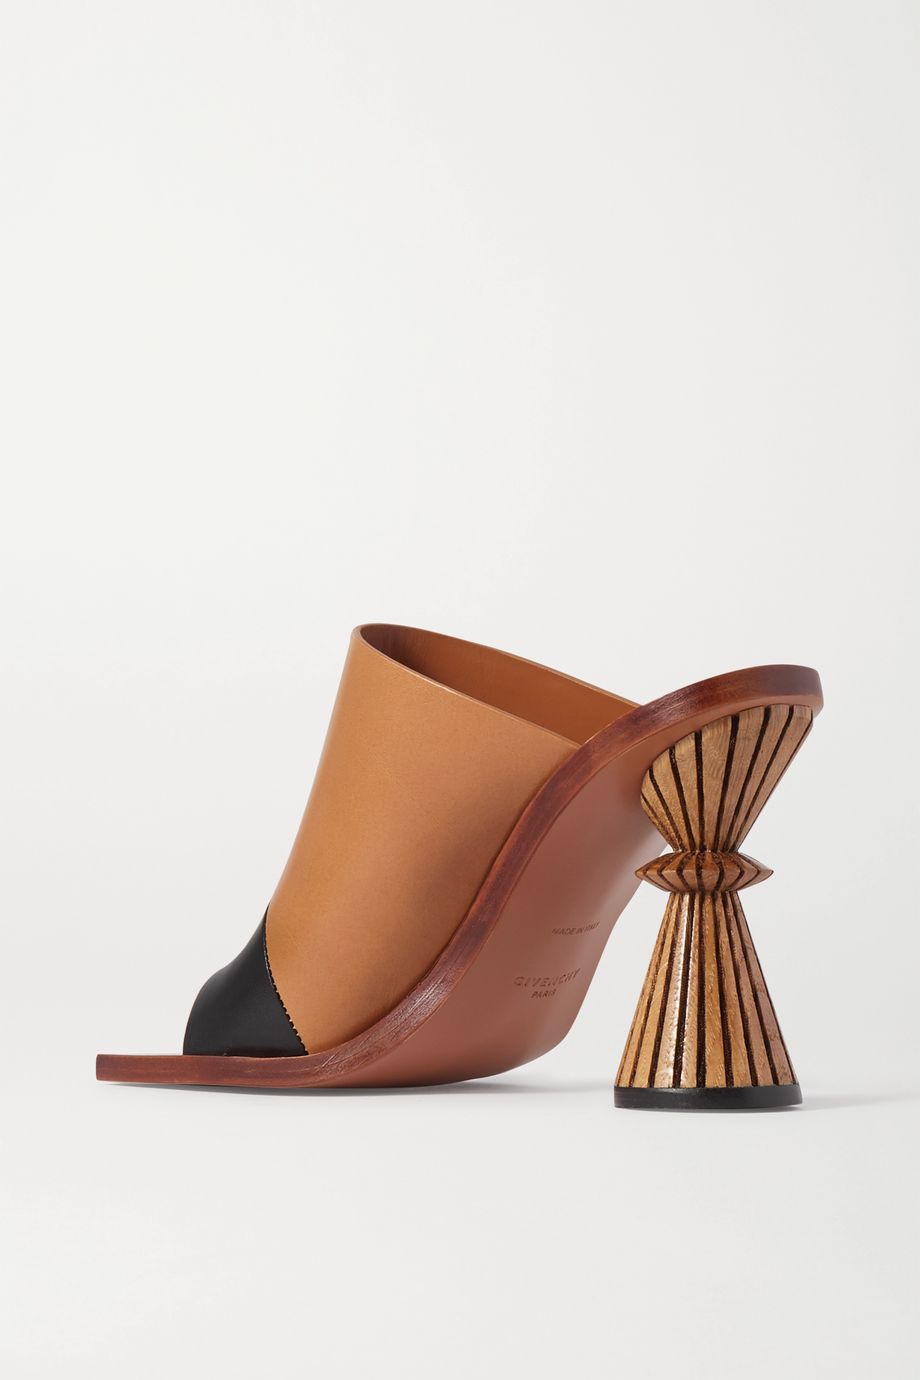 Givenchy Two-tone leather mules